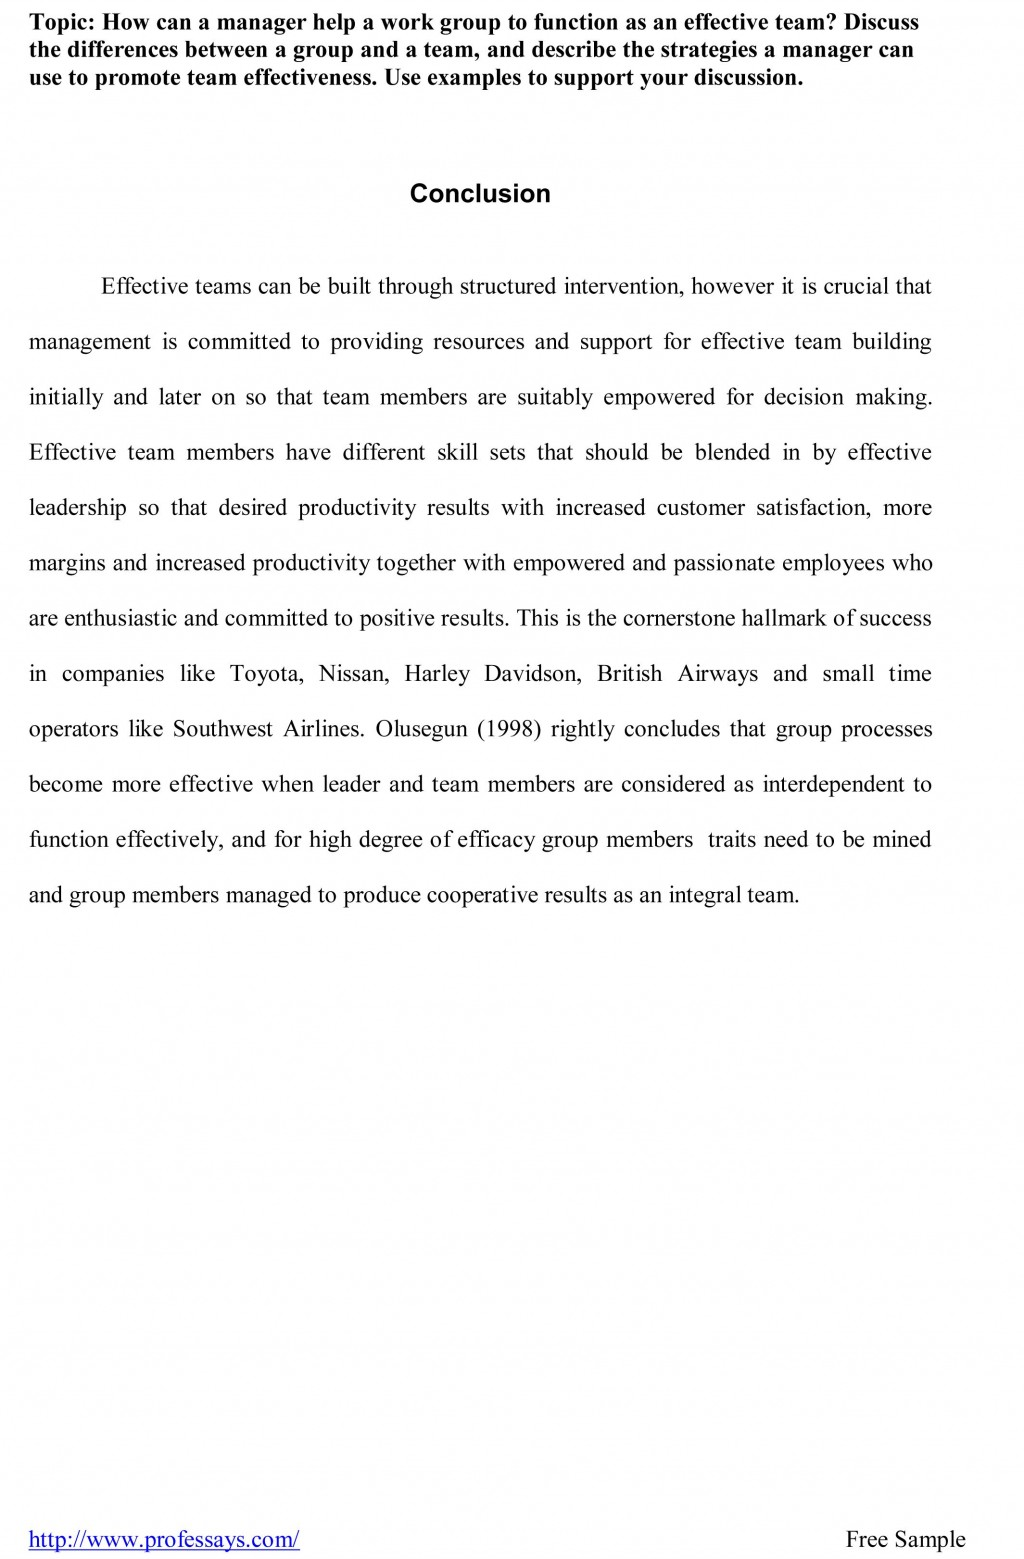 003 Example Of Research Paper Conclusion Astounding Conclusions In About Smoking Large